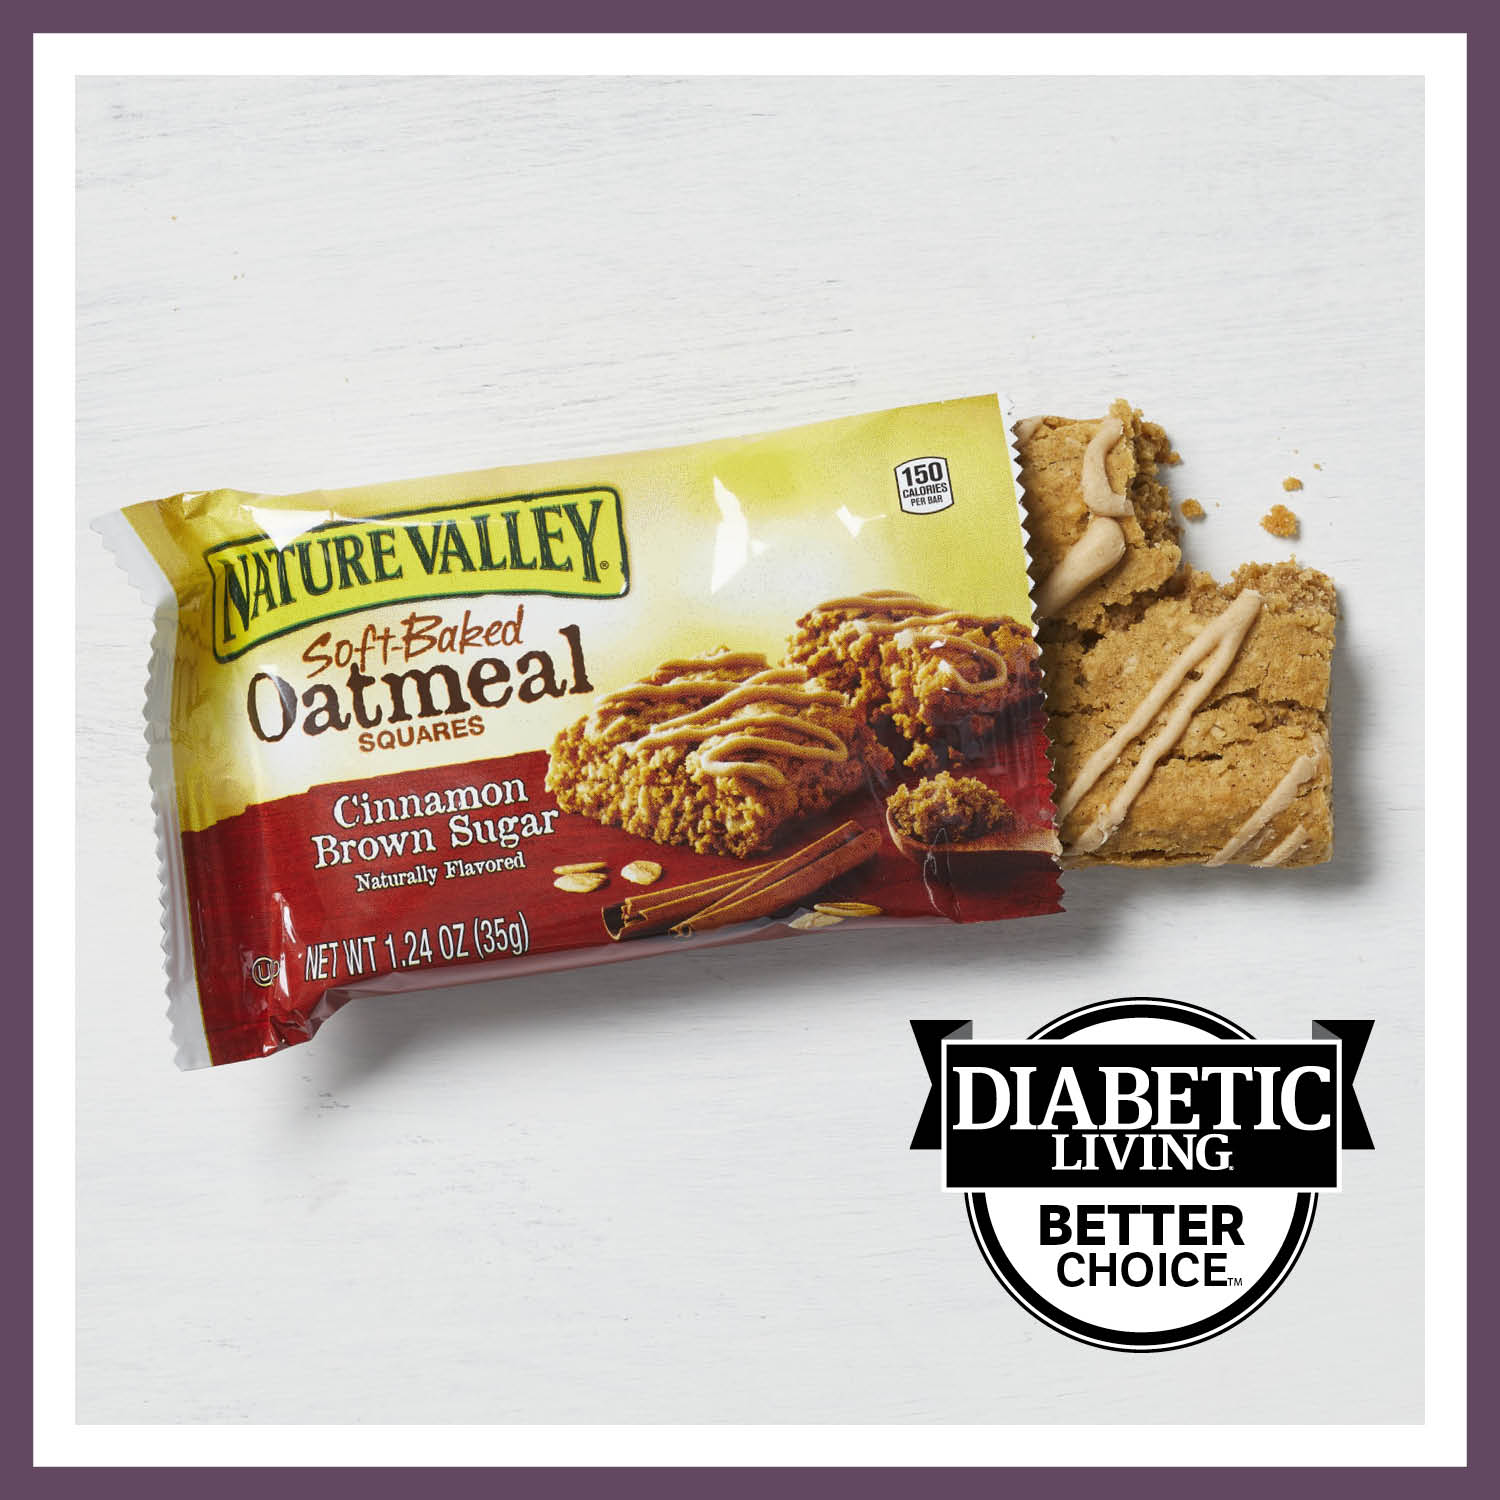 Best Breakfast Bar: Nature Valley Cinnamon Brown Sugar Soft-Baked Oatmeal Squares